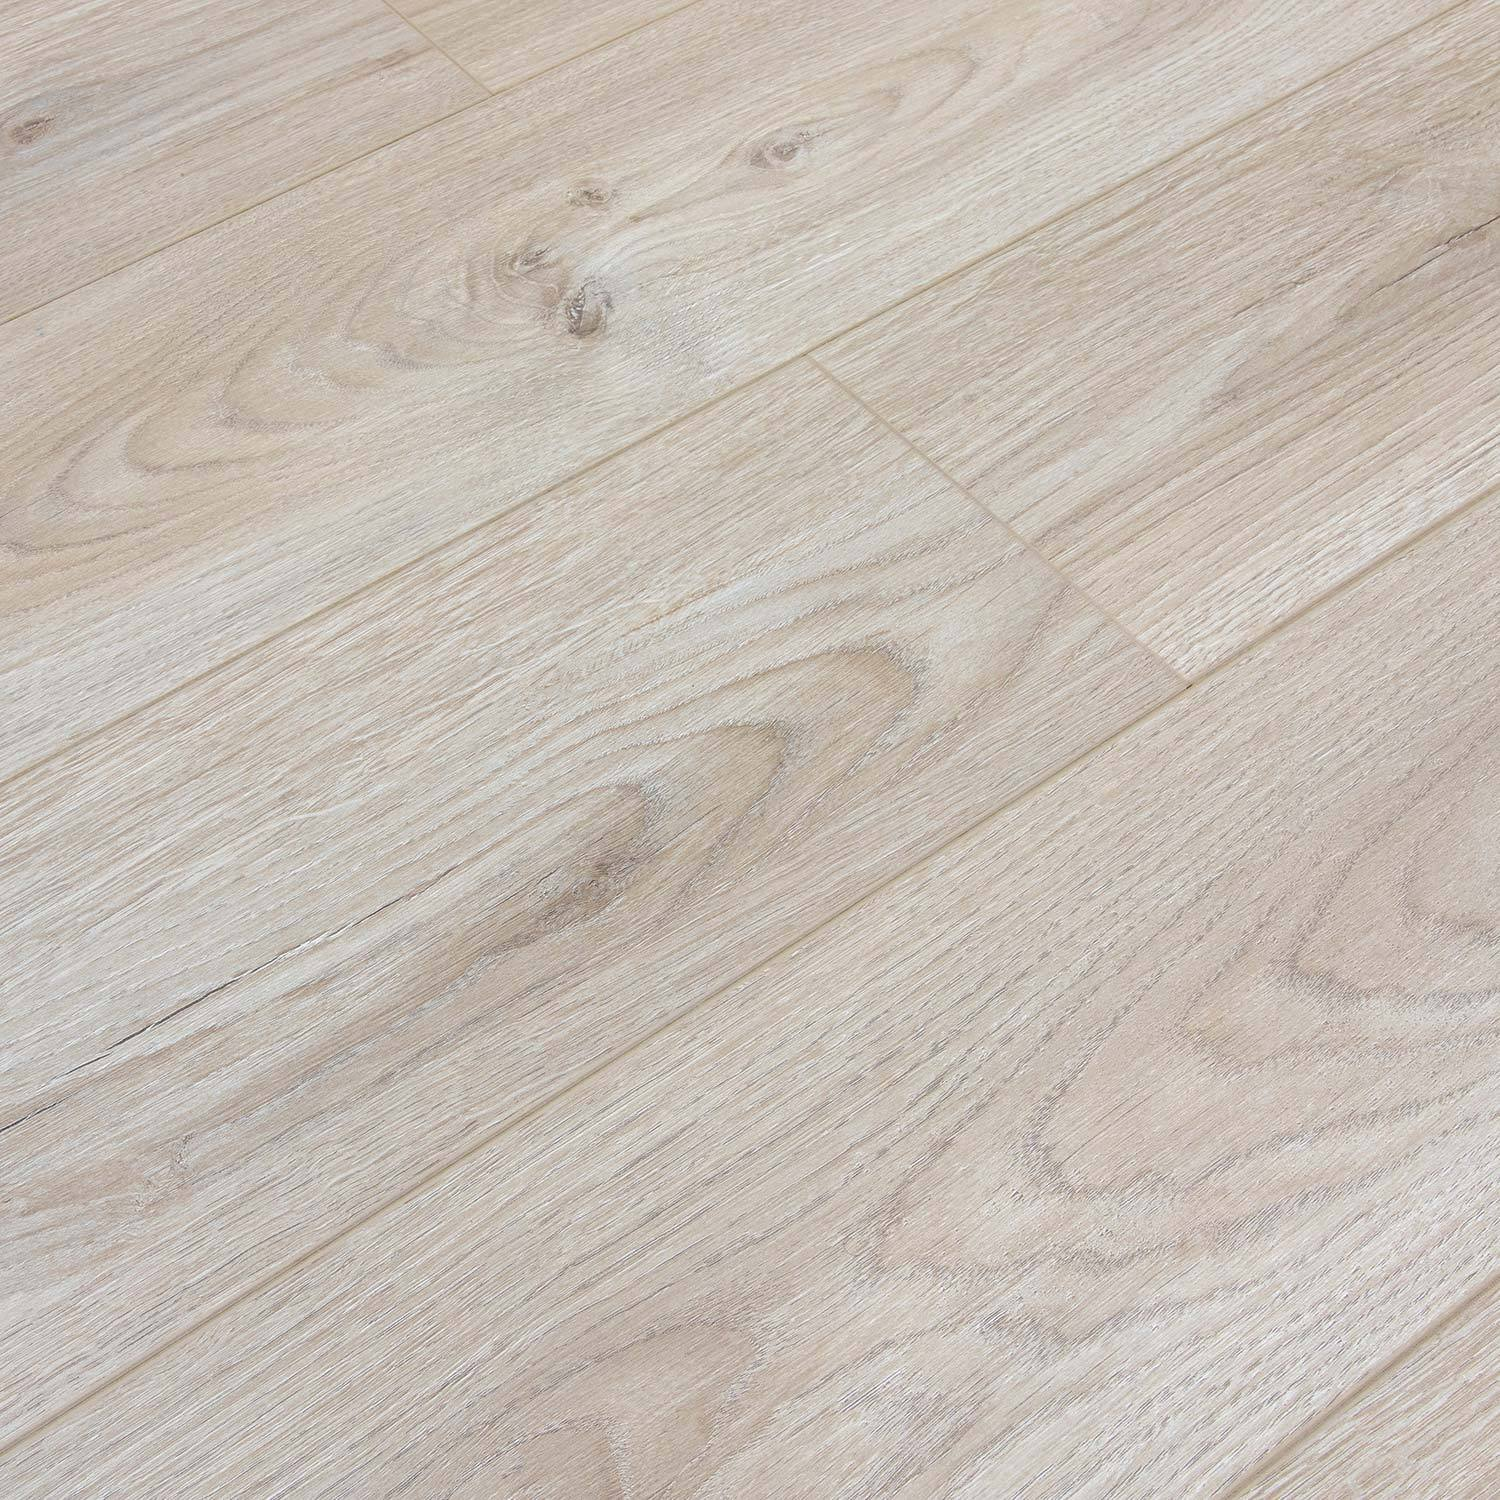 Sisu Laminate Light Brown Maple